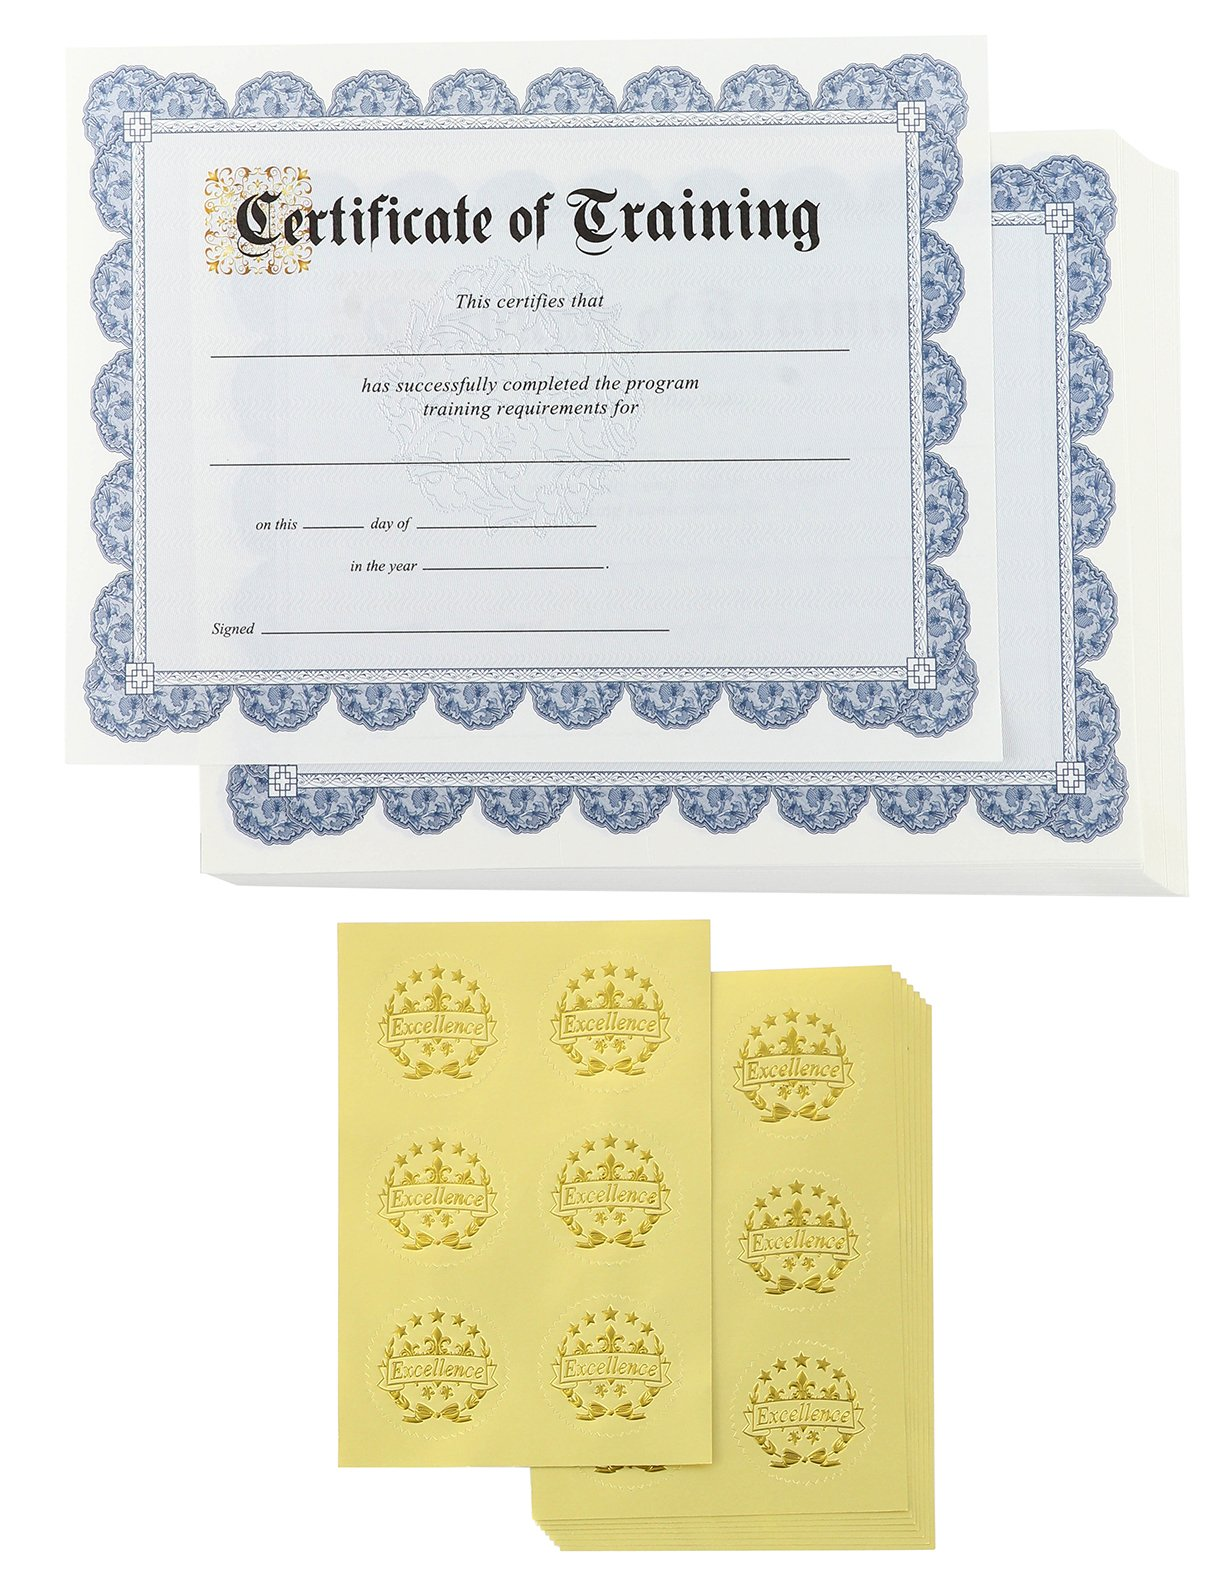 Certificate Papers – 48 Certificate of Training Award Certificates with 48 Excellence Gold Foil Seal Stickers, for Student, Teacher, Professor, Employee, Blue, 8.5 x 11 inches